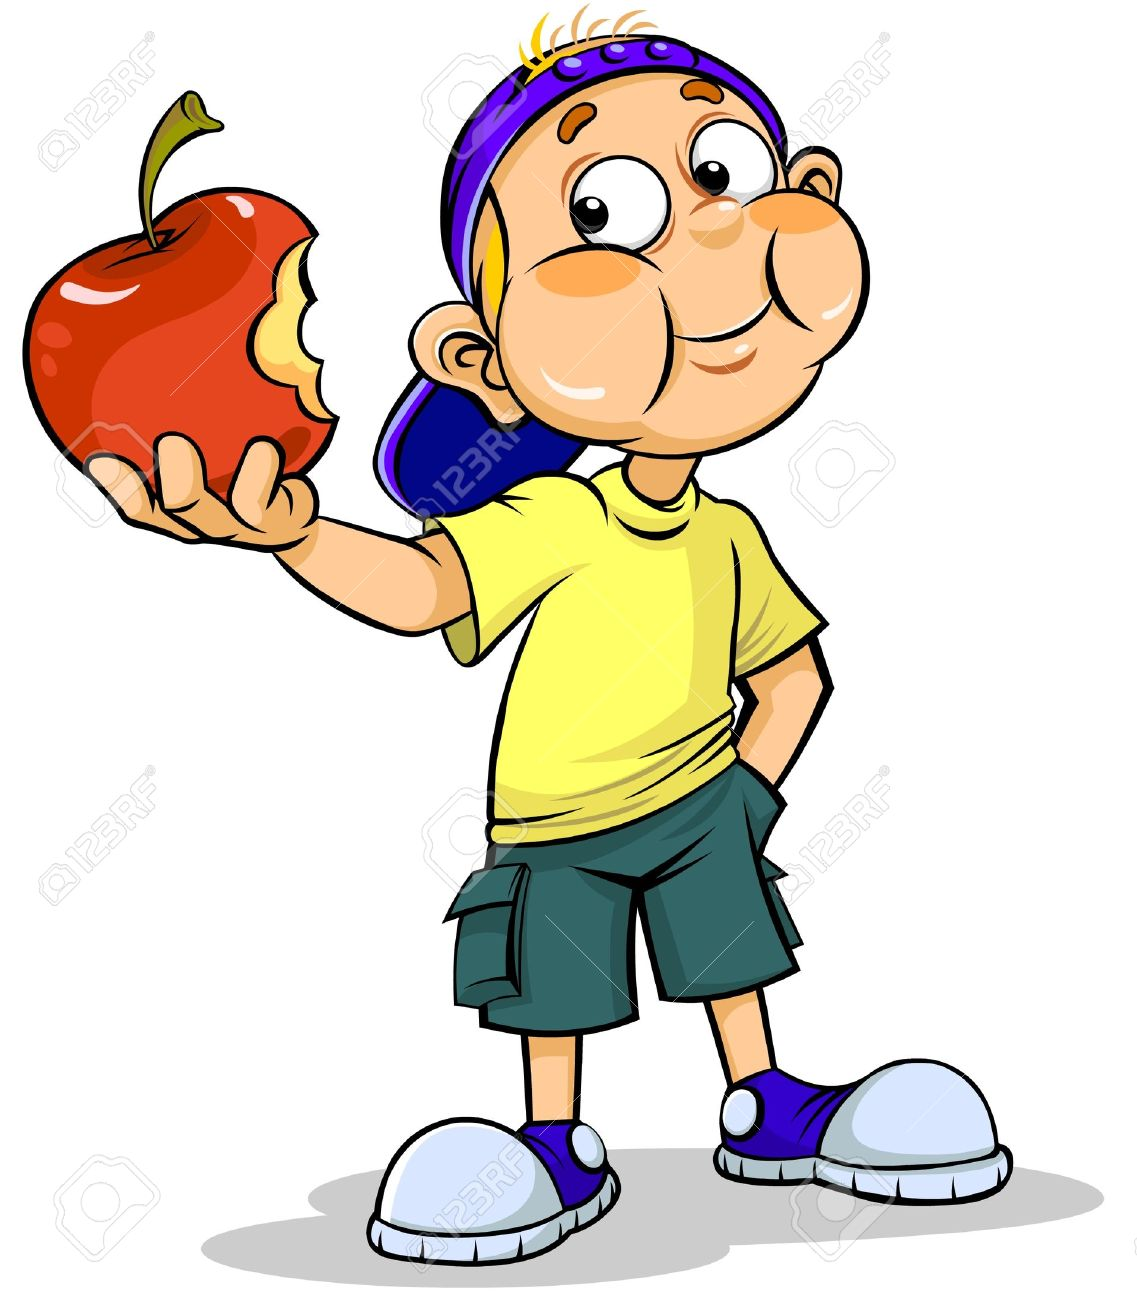 1137x1300 Kid Eating Apple Clipart